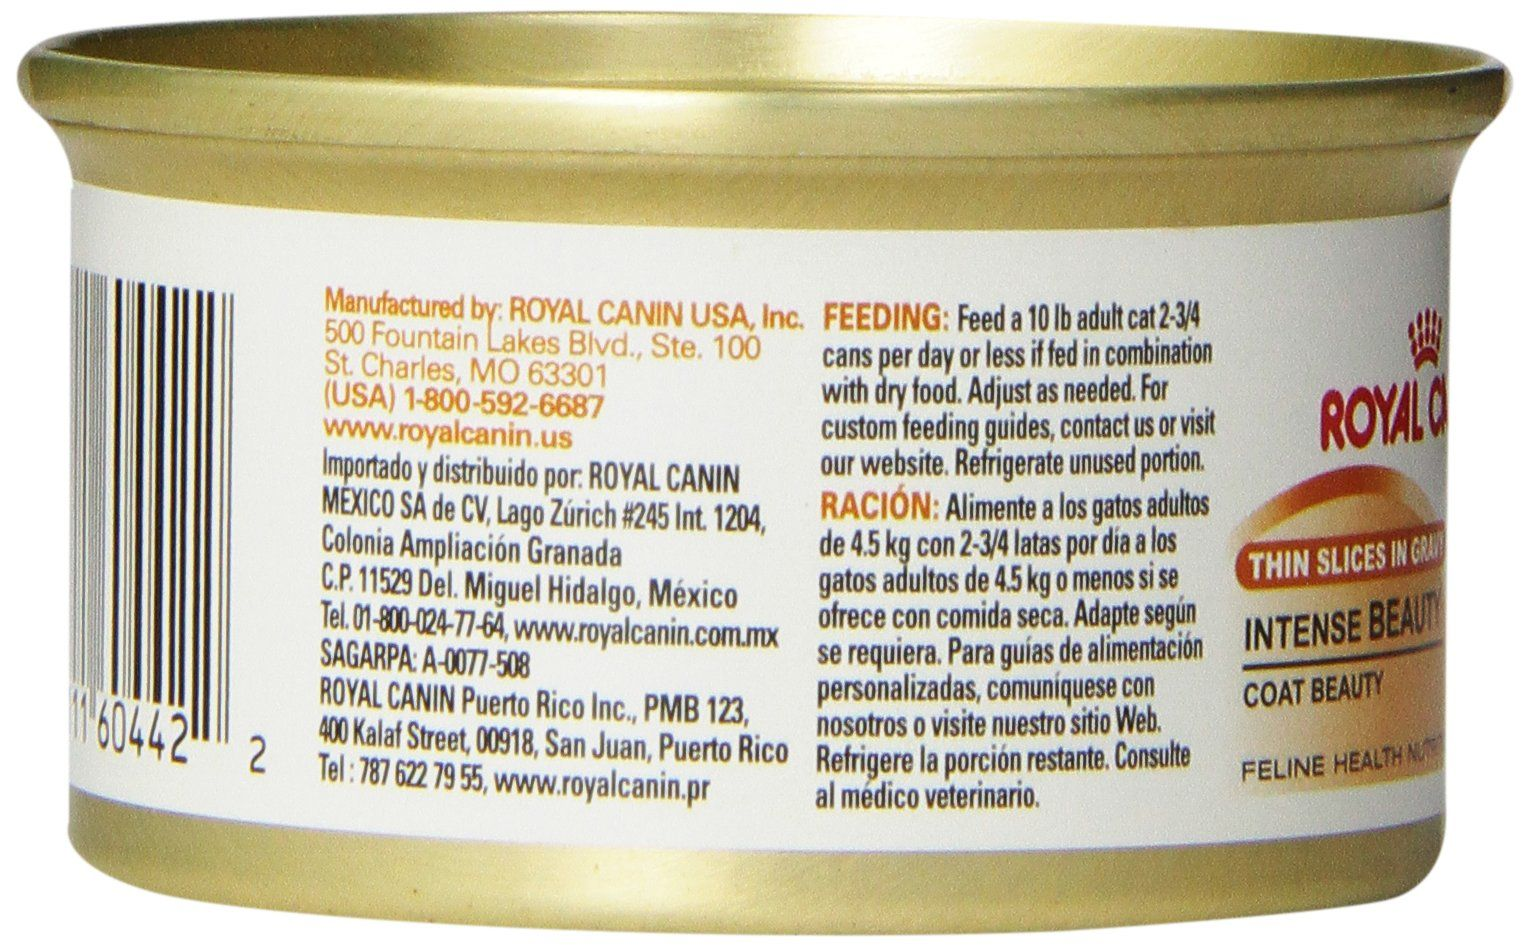 Royal Canin Canned Cat Food Intense Beauty Thin Slices In Gravy Pack Of 24 3ounce Cans Find Out More About The G Canned Cat Food Dry Cat Food Feline Health